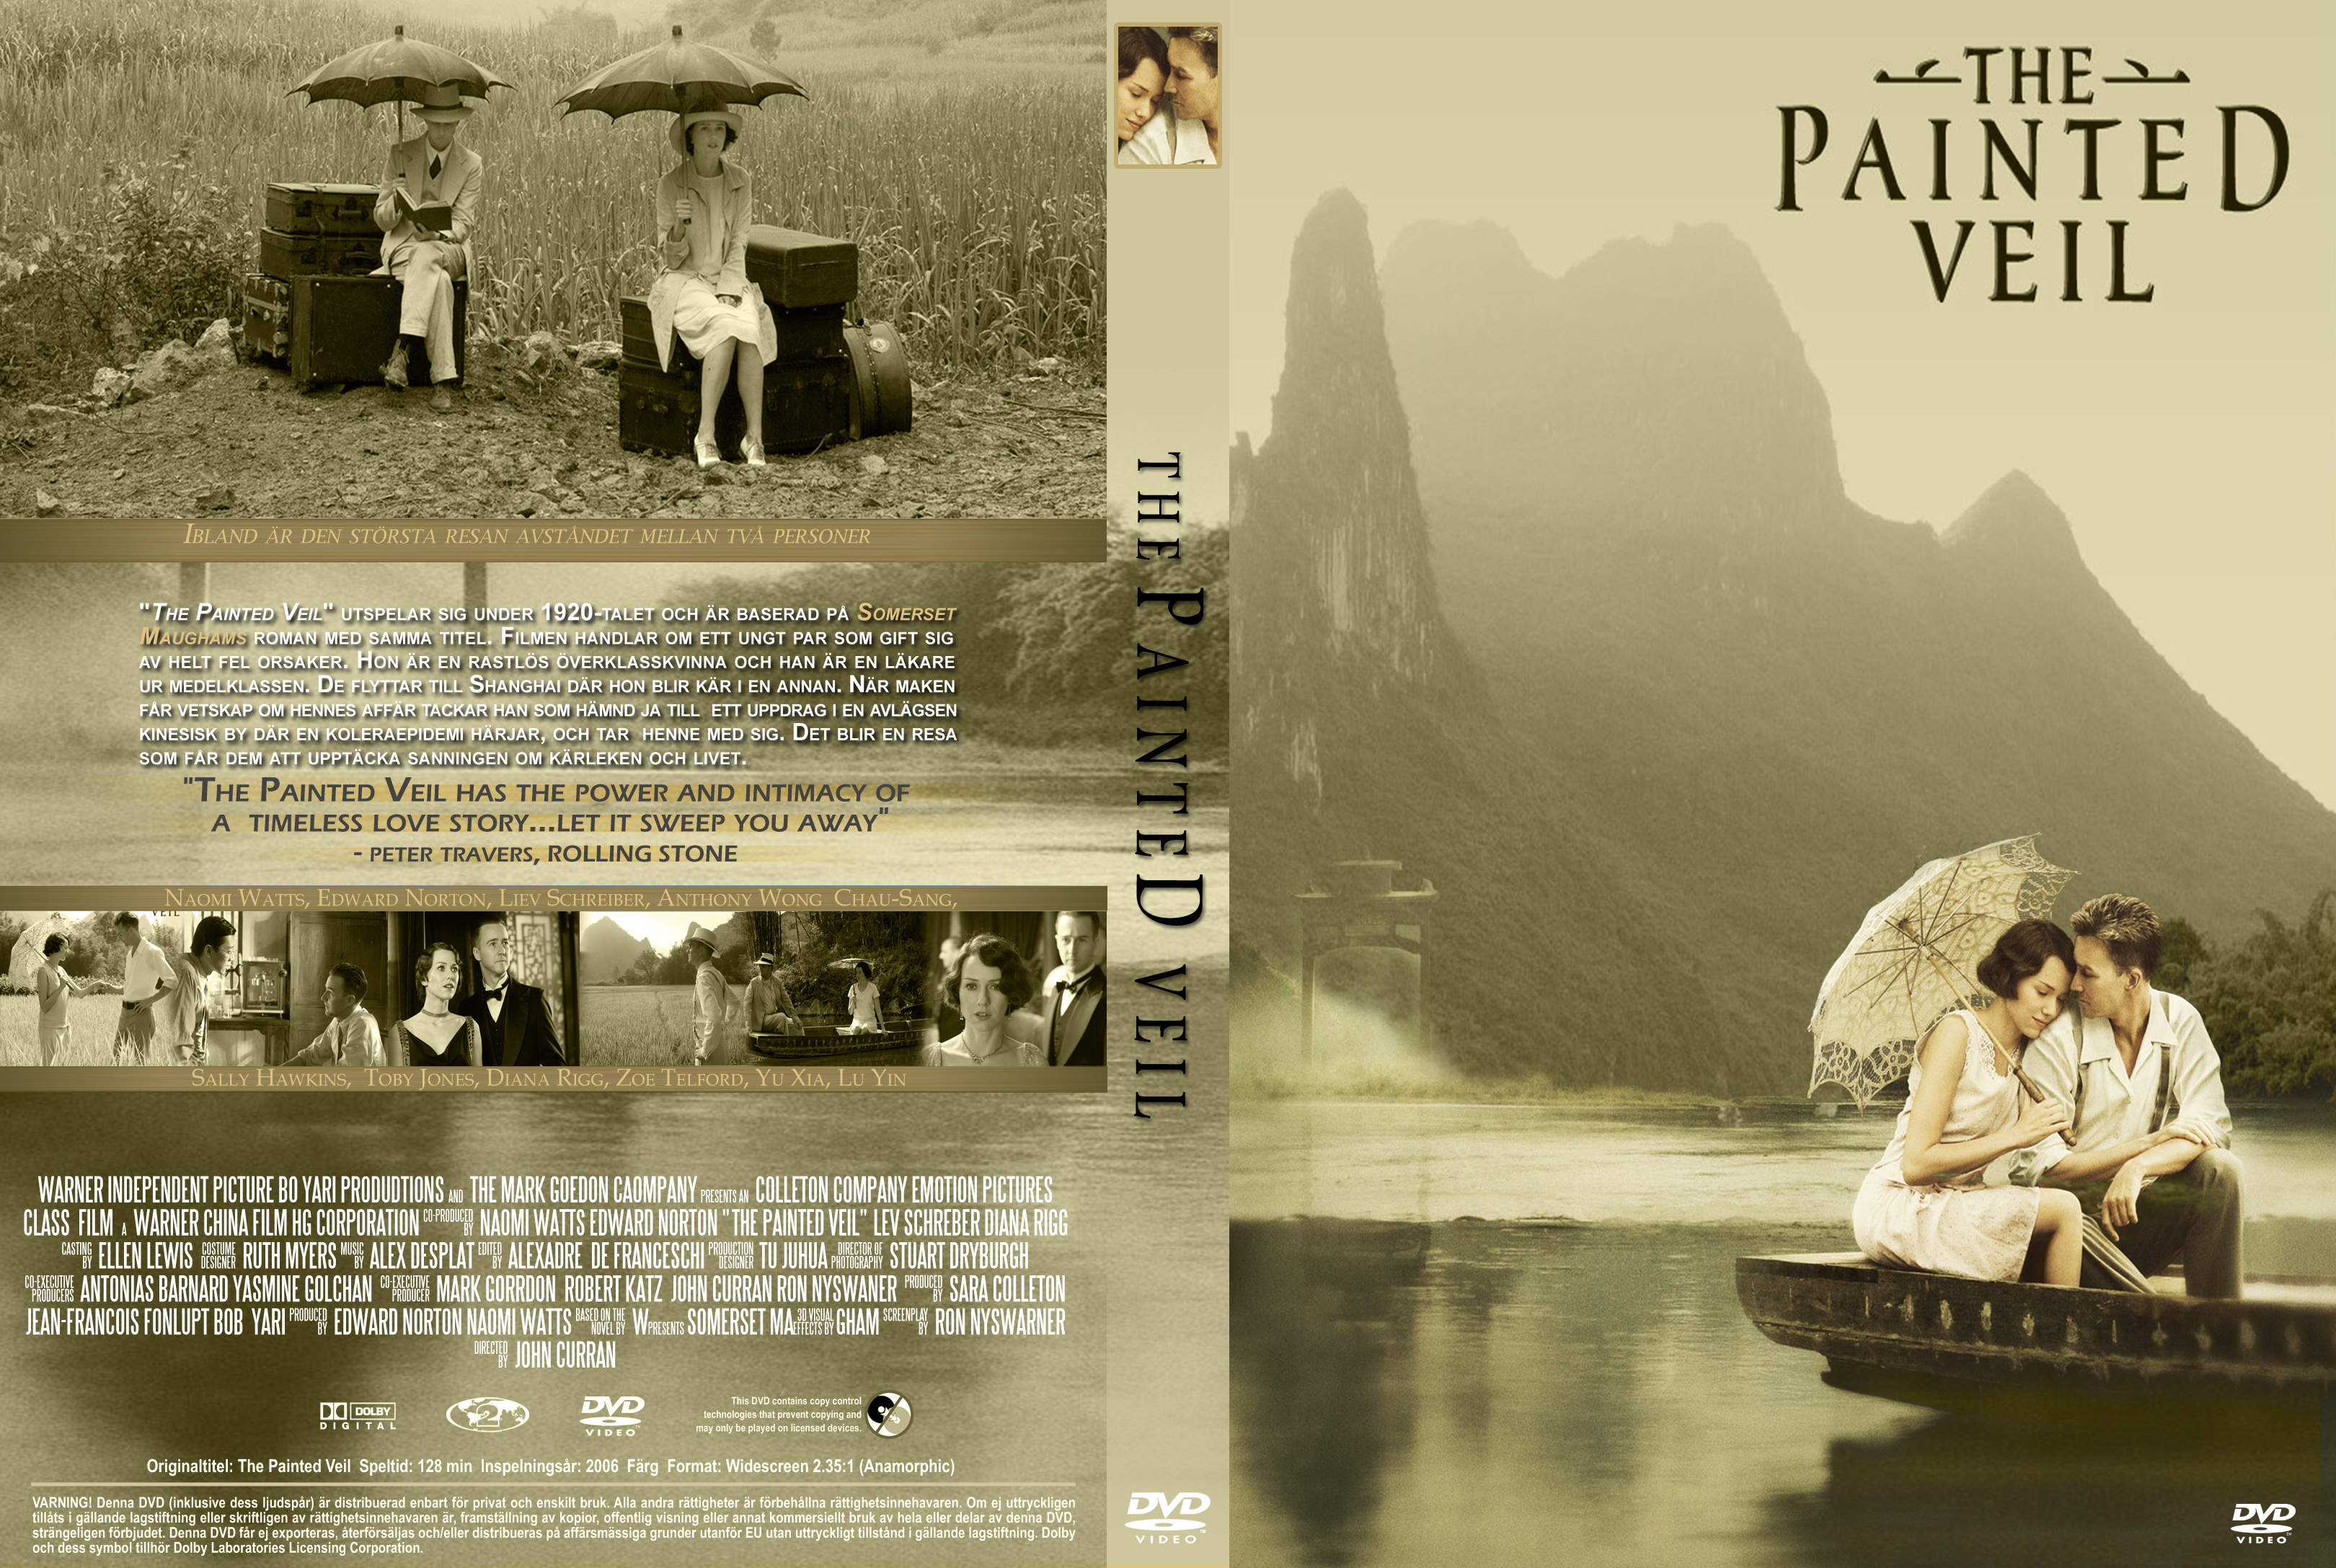 The painted veil movie reviews